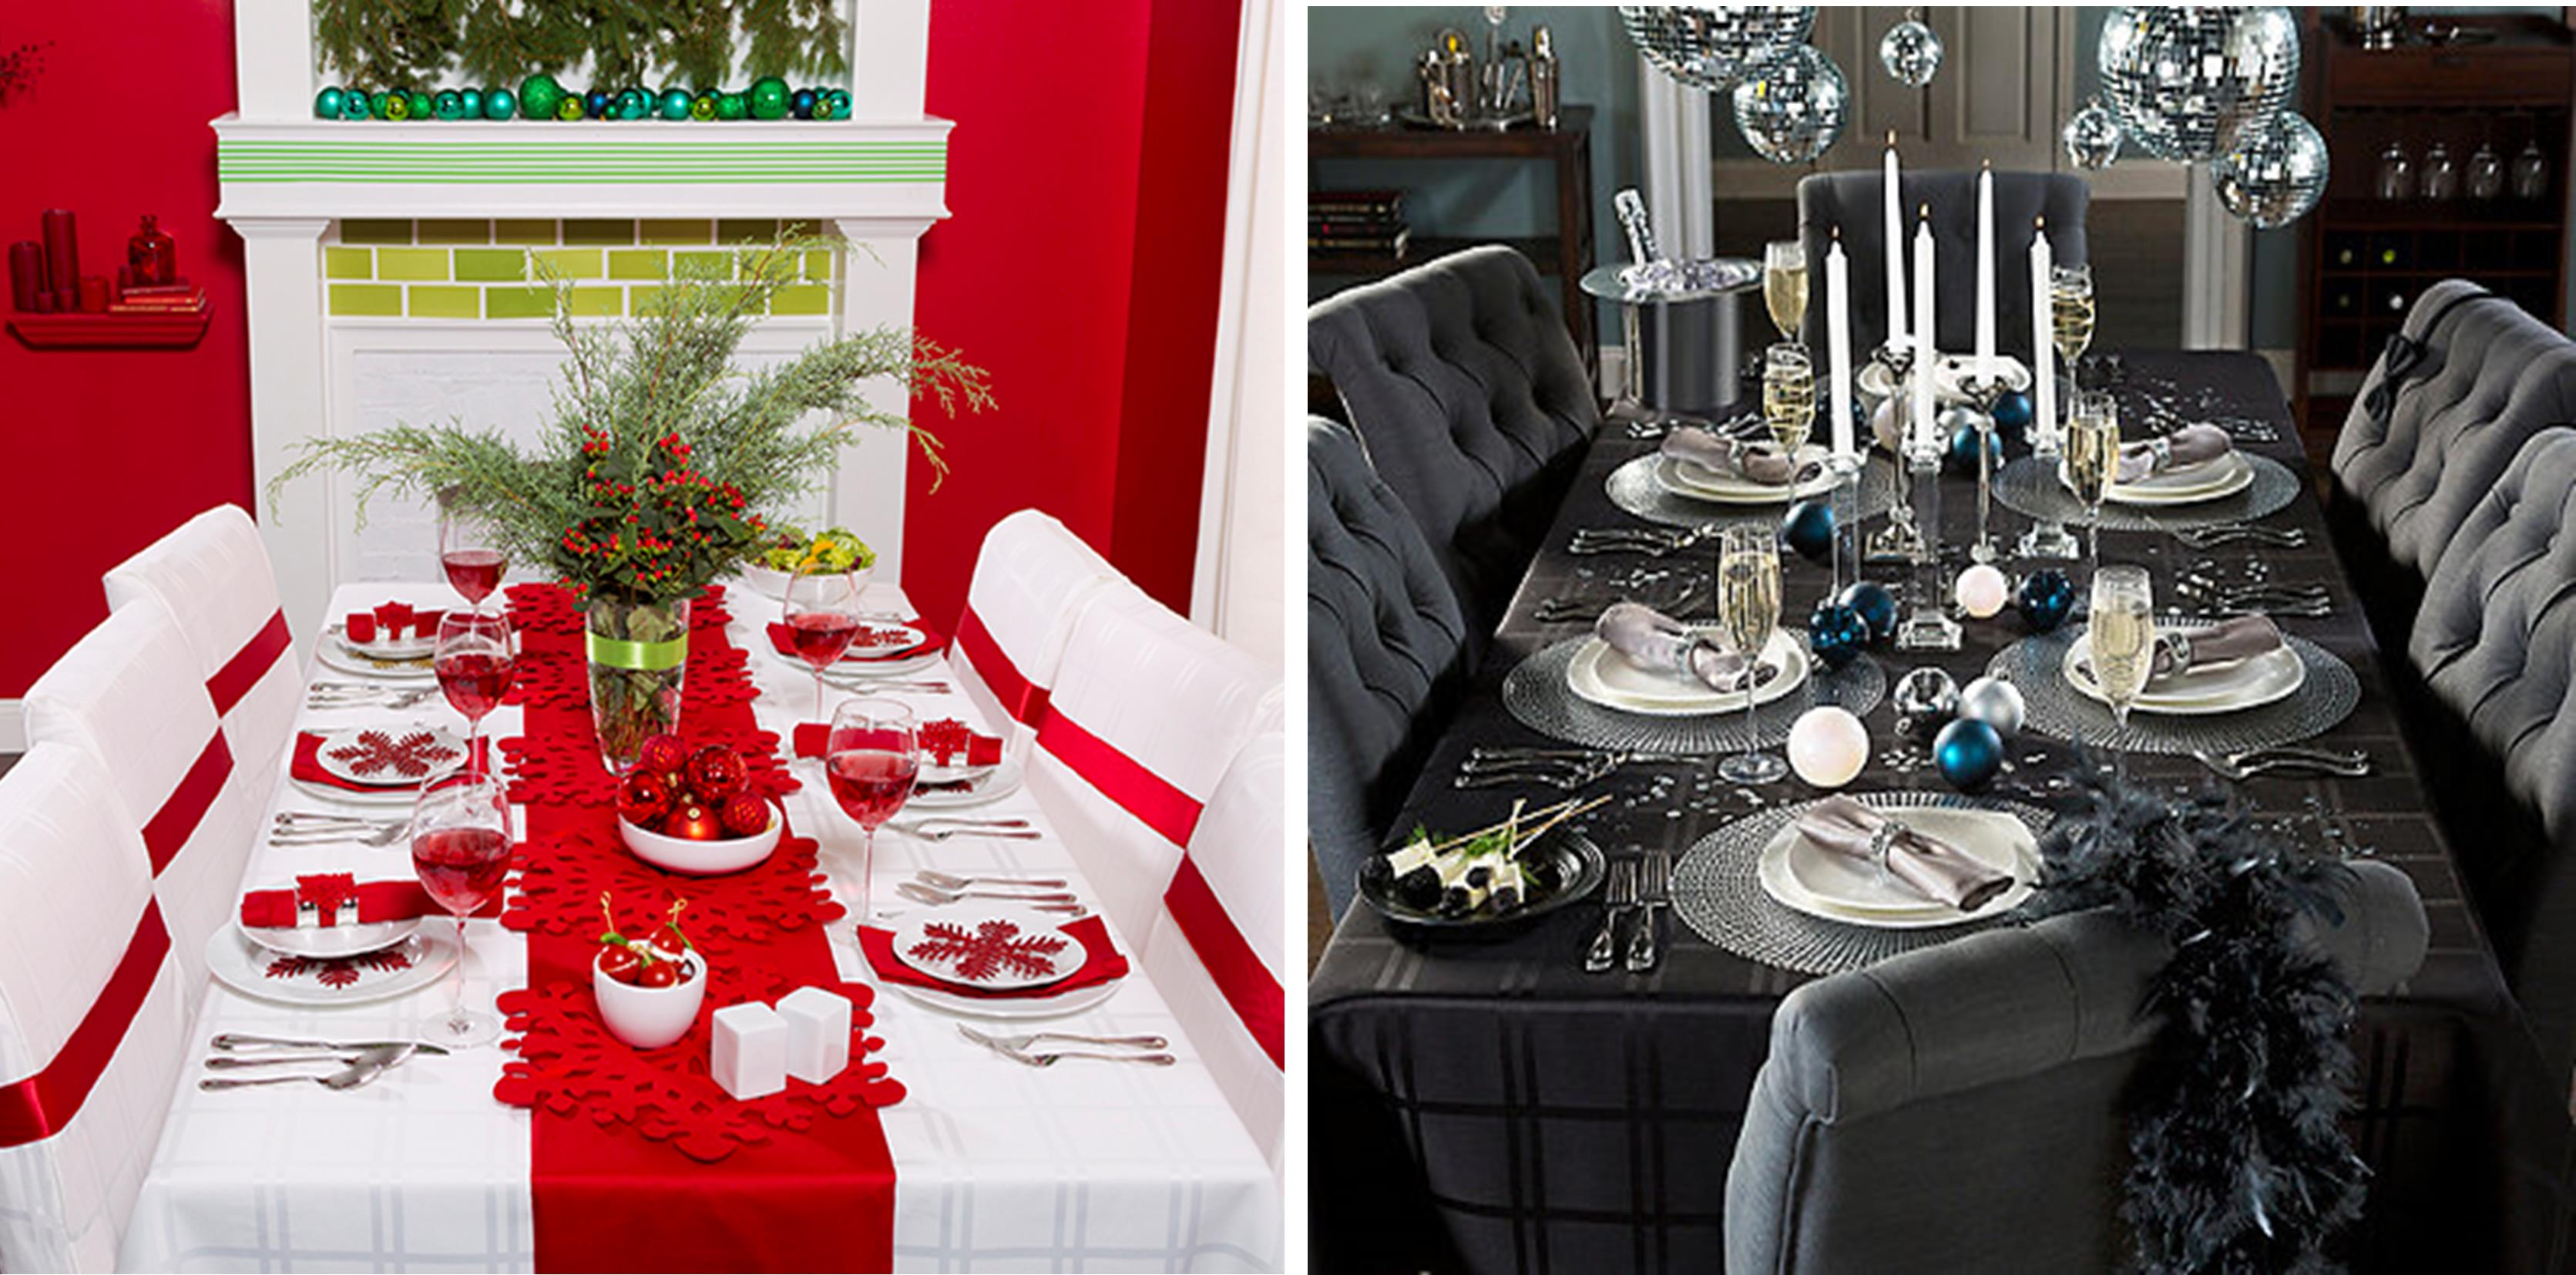 Entertain With Ease - Tablecloths & Napkins - from Bed Bath & Beyond